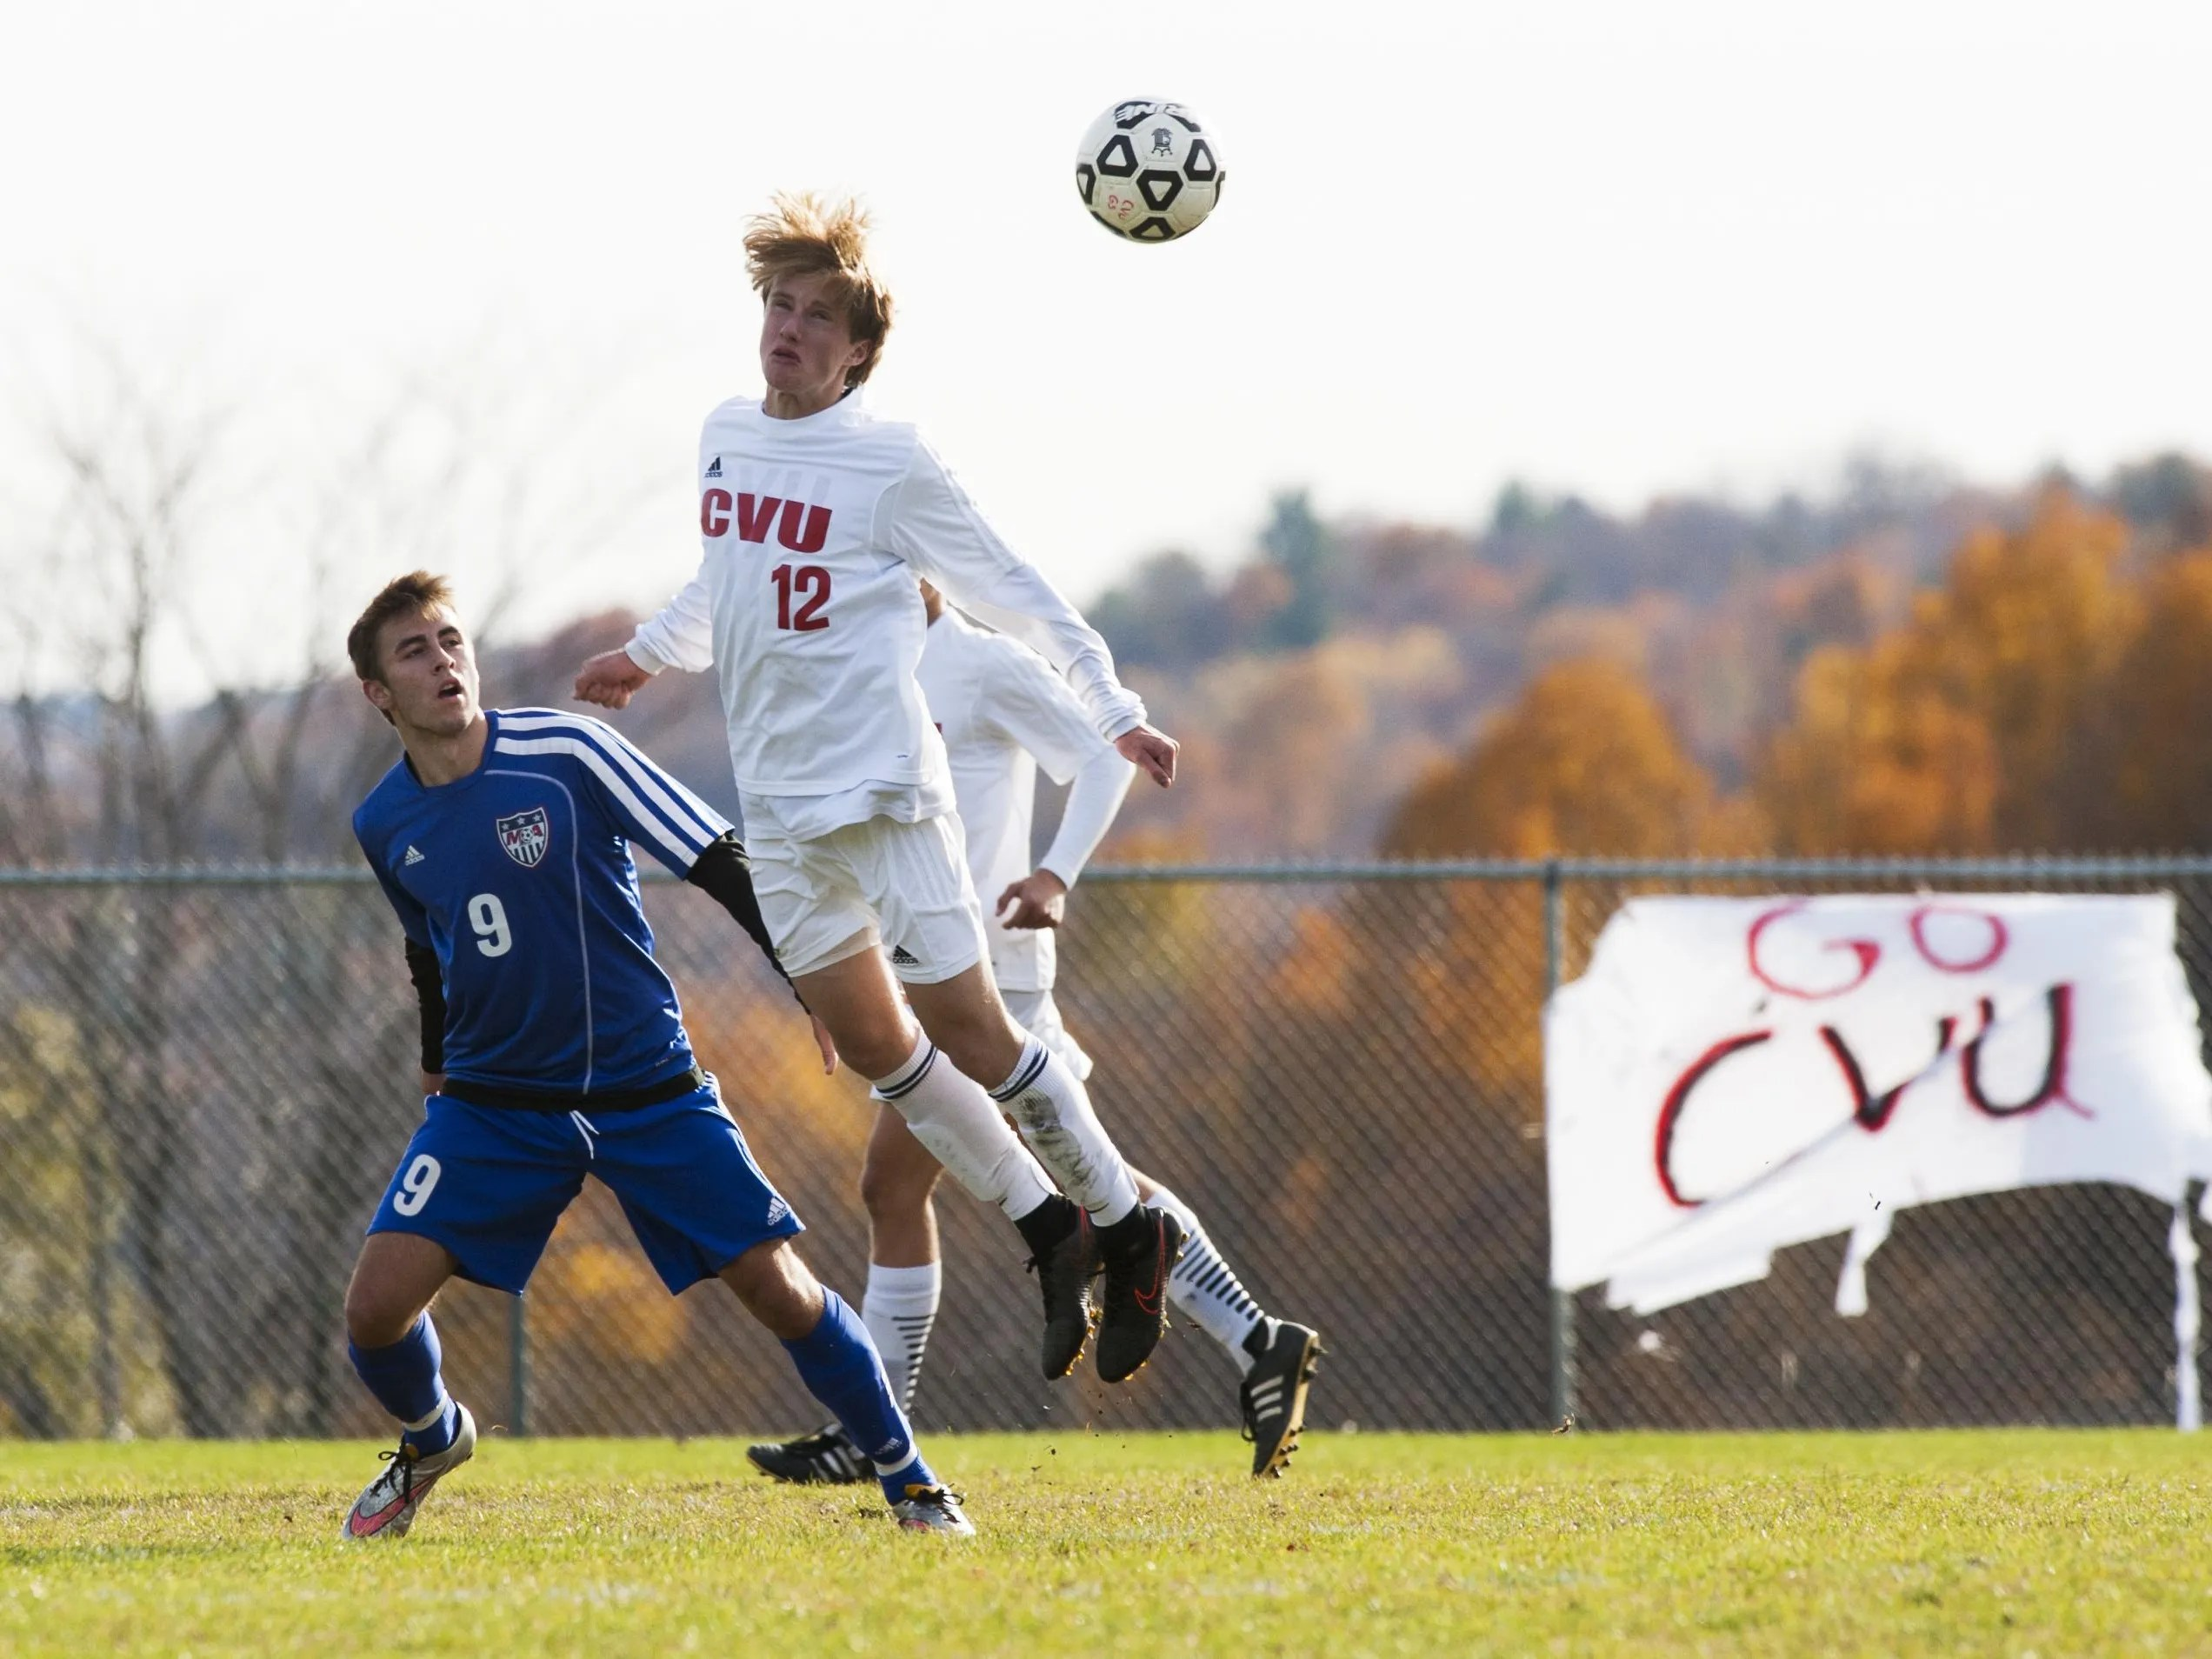 beede430e73e8 Top-seeded CVU dispatches Mount Anthony | USA TODAY High School Sports